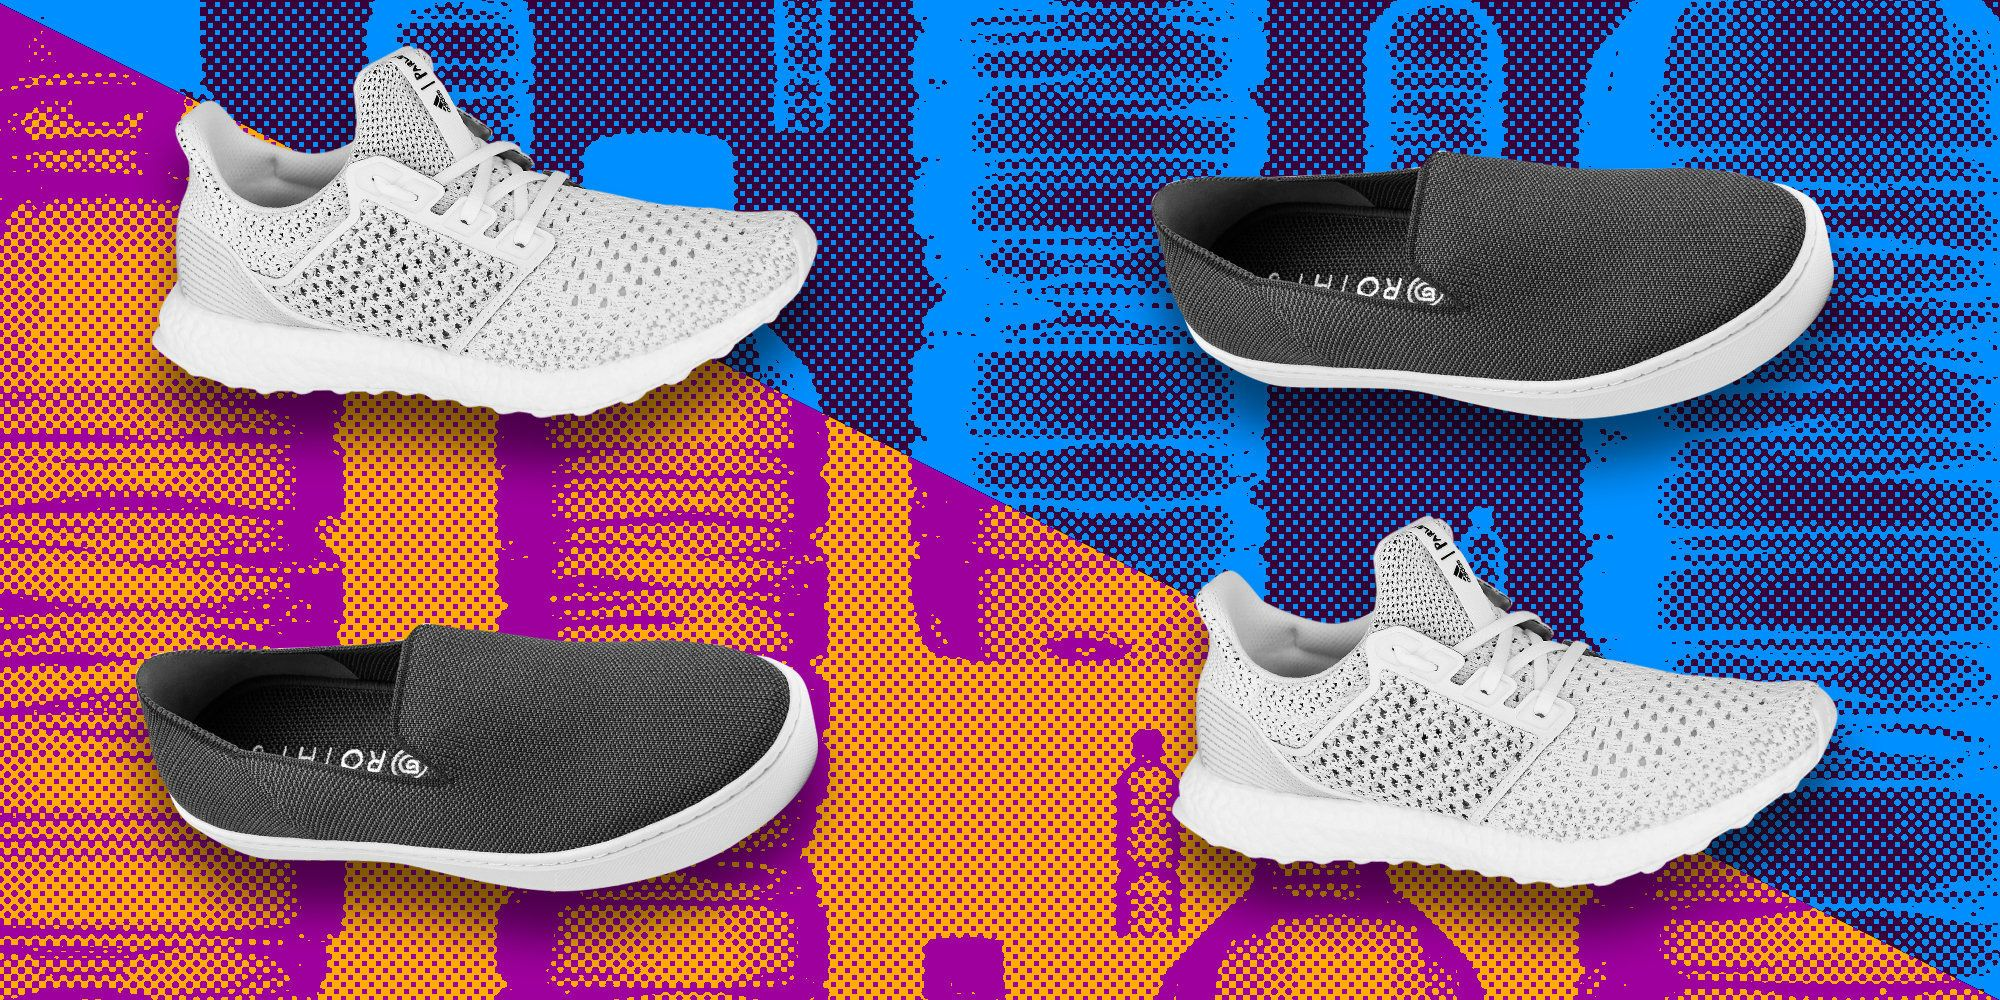 Can Sneakers Made From Recycled Plastic Save Our